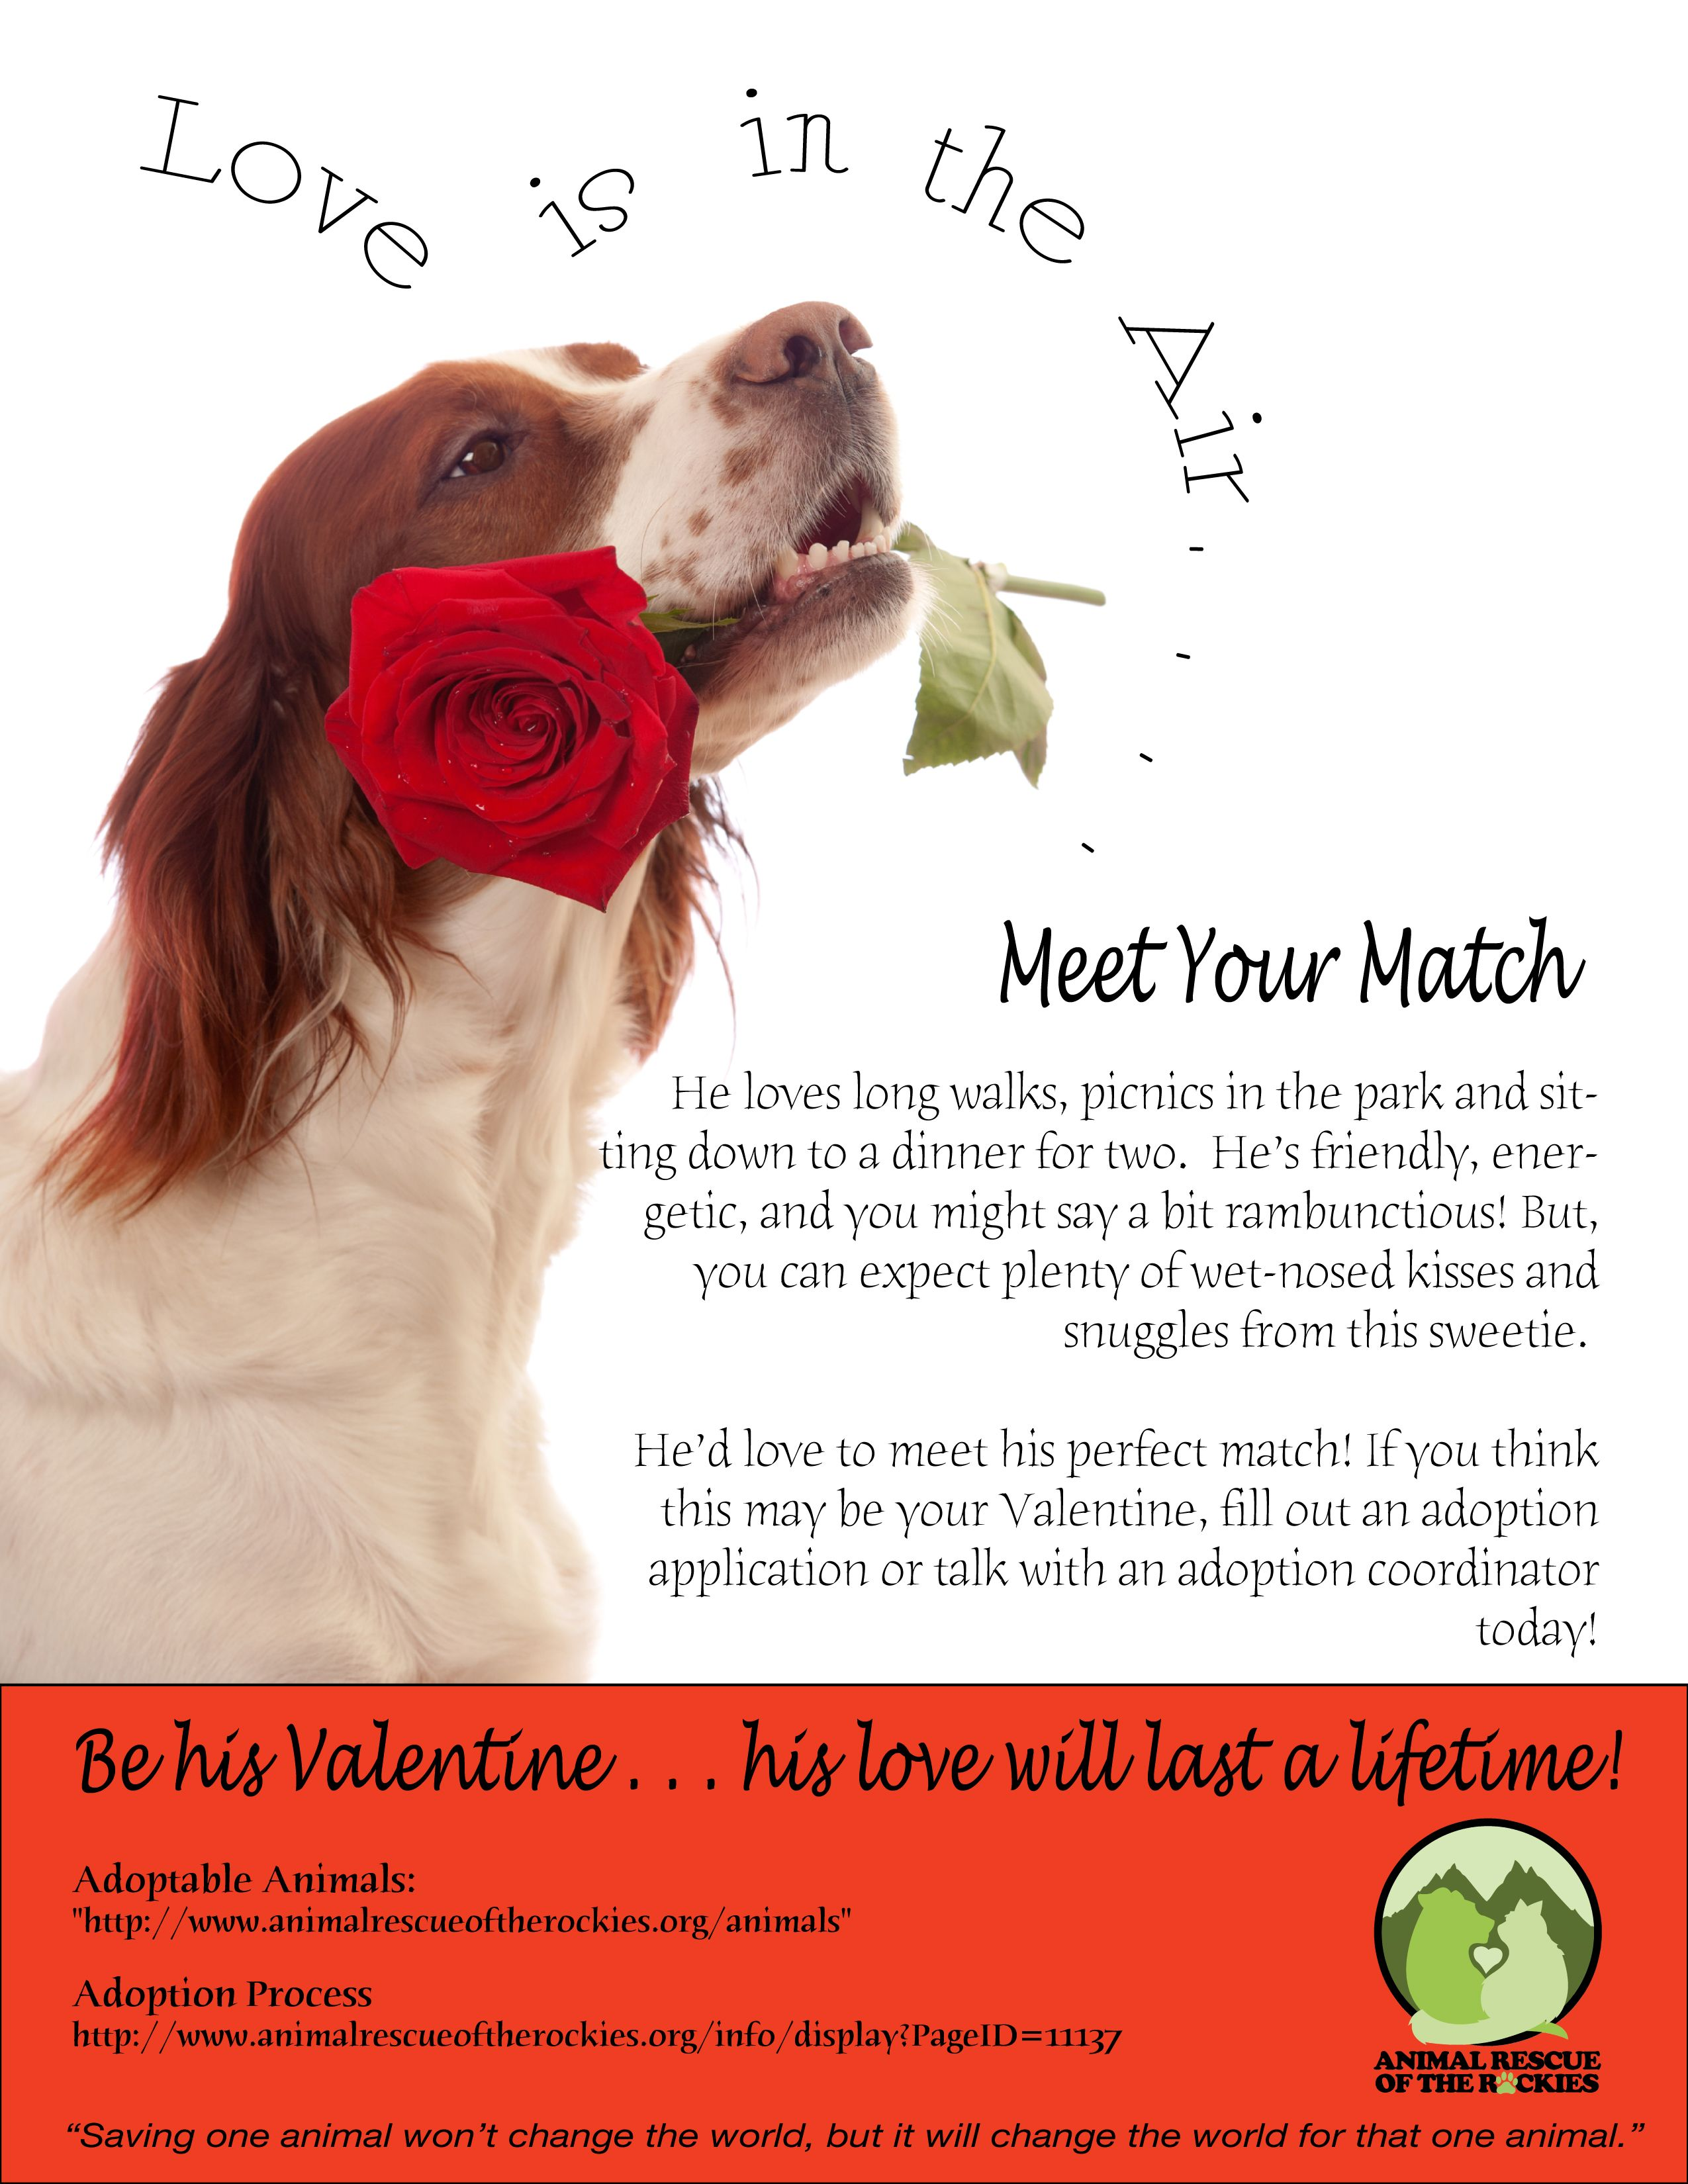 Be My Valentine Adopt An Orphaned Pet And You Ll Get A Lifetime Of Love Animal Rescue League Animal Valentine Animal Advocacy